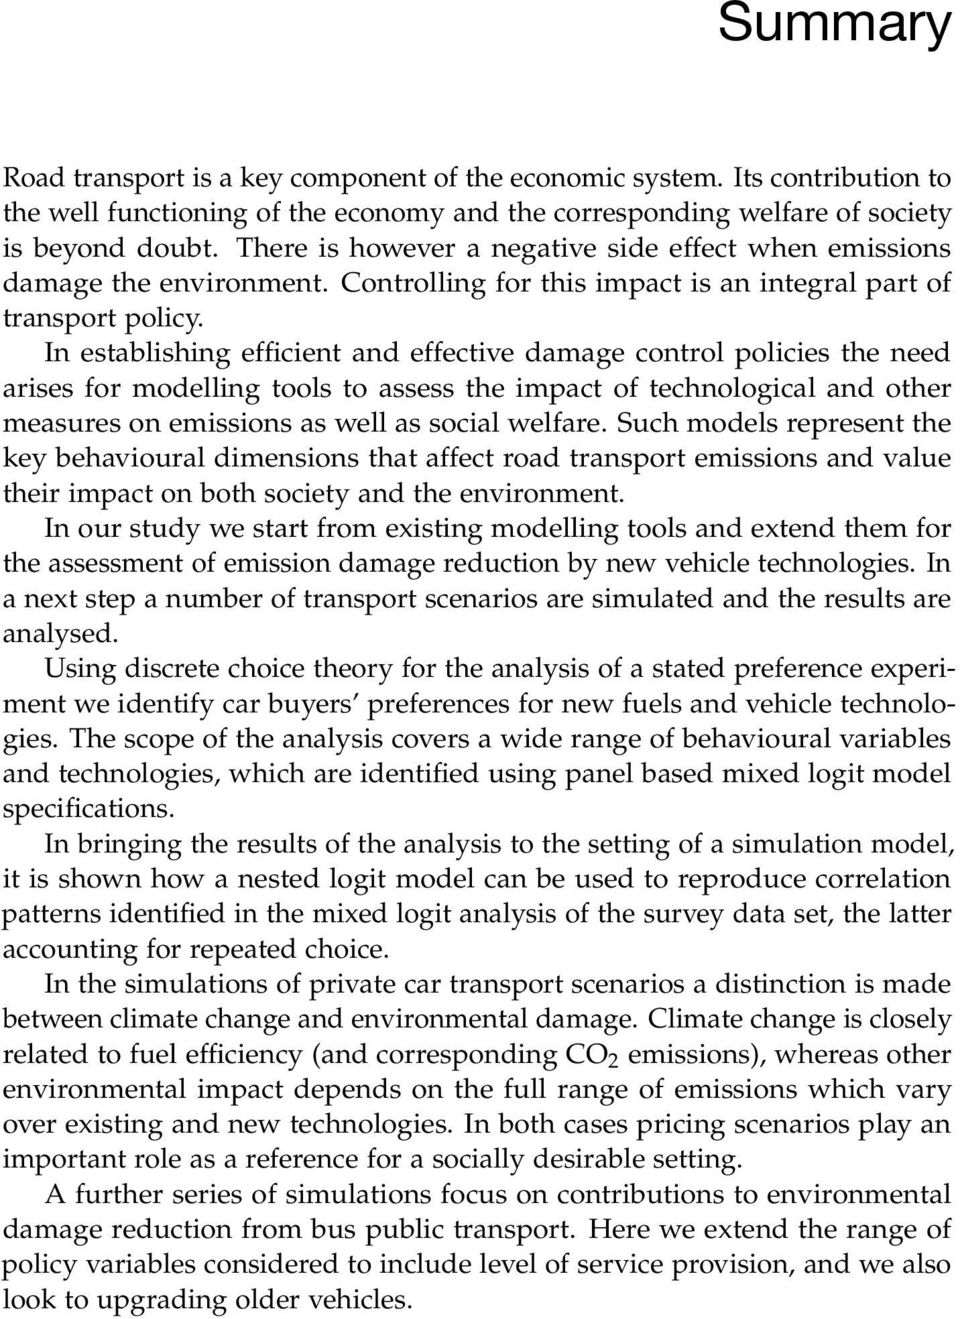 In establishing efficient and effective damage control policies the need arises for modelling tools to assess the impact of technological and other measures on emissions as well as social welfare.